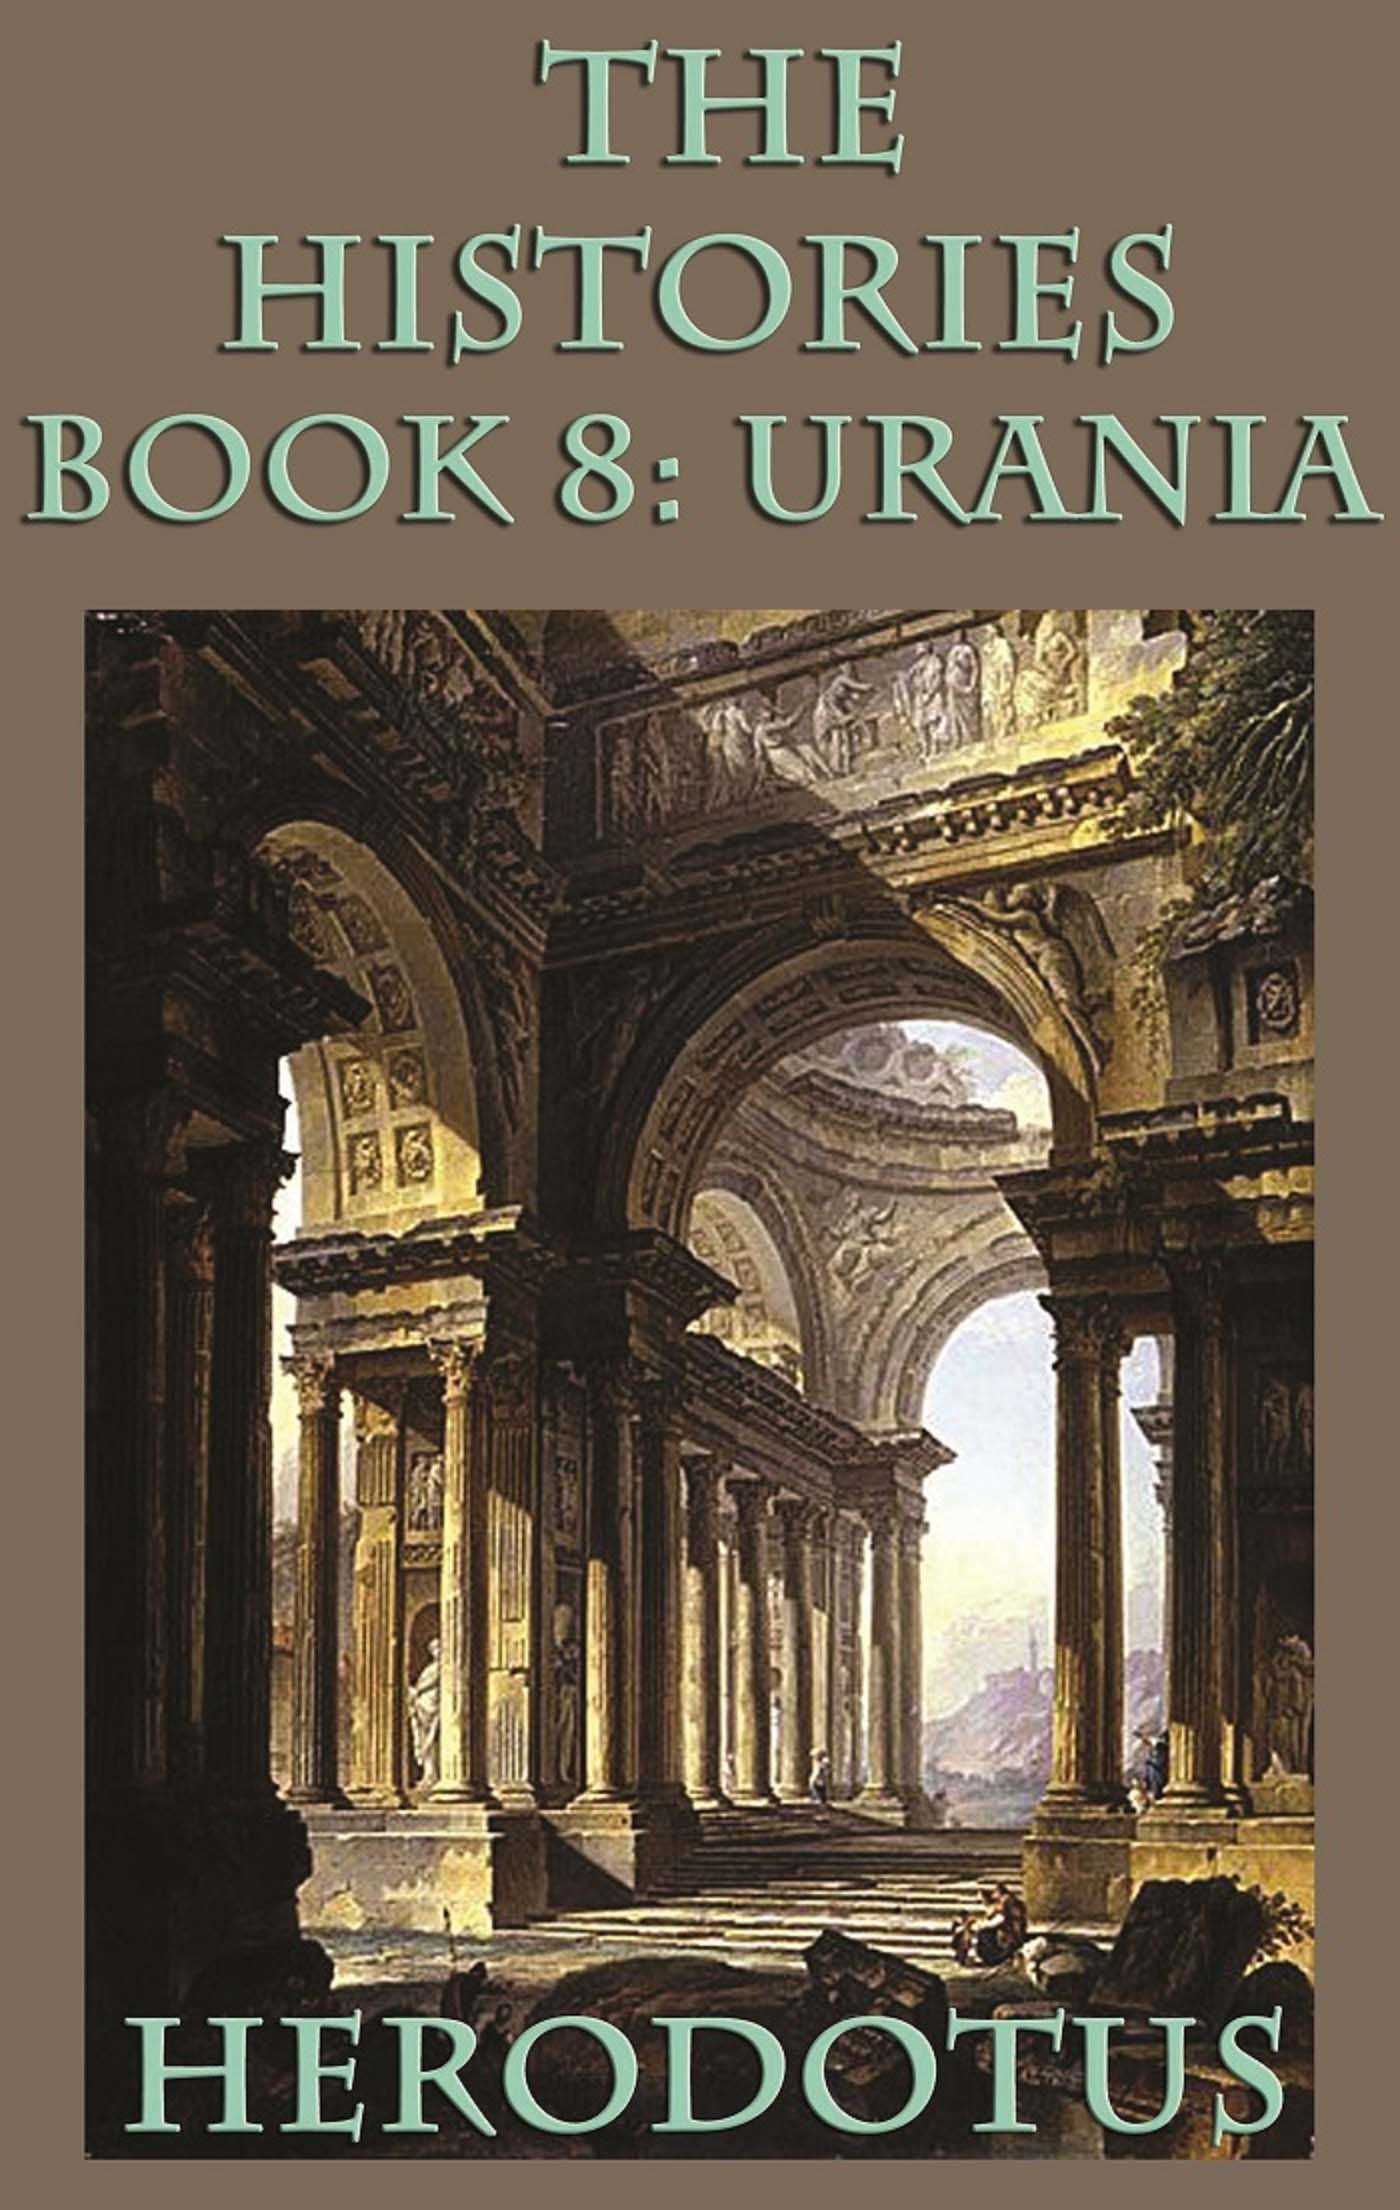 The histories book 8 urania 9781681462974 hr